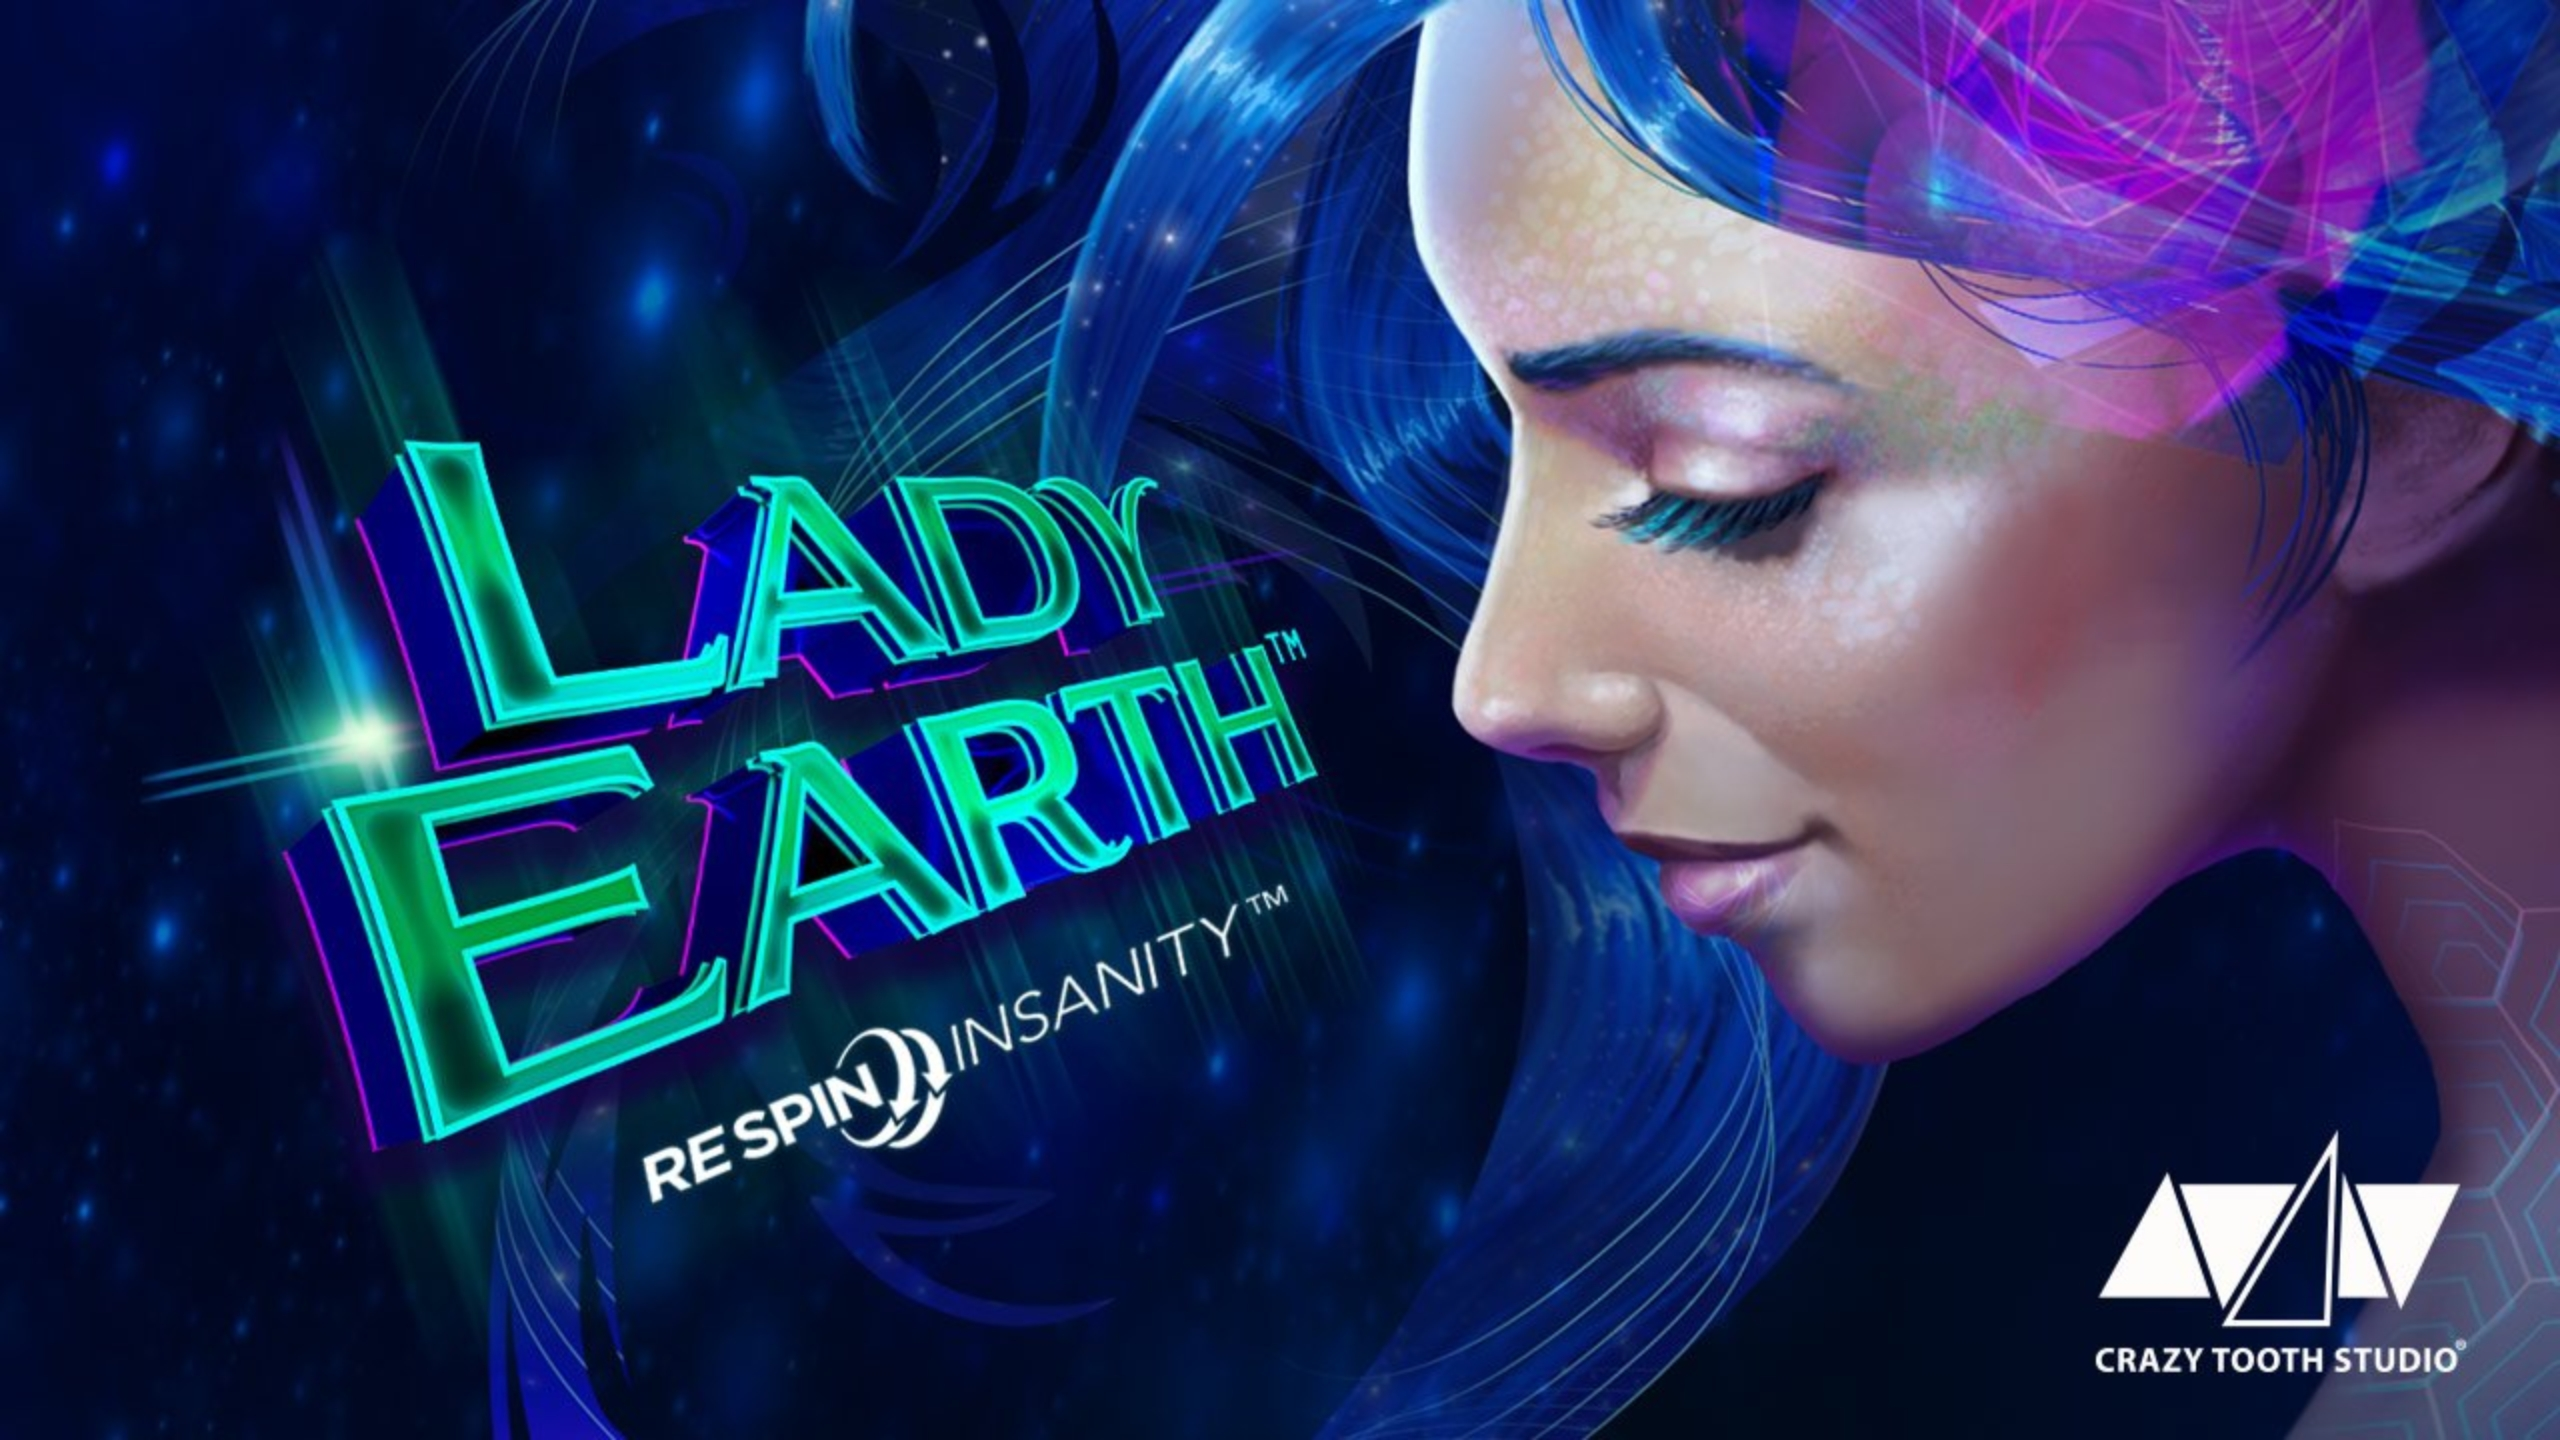 Lady Earth Online Slot Demo Game by Crazy Tooth Studio